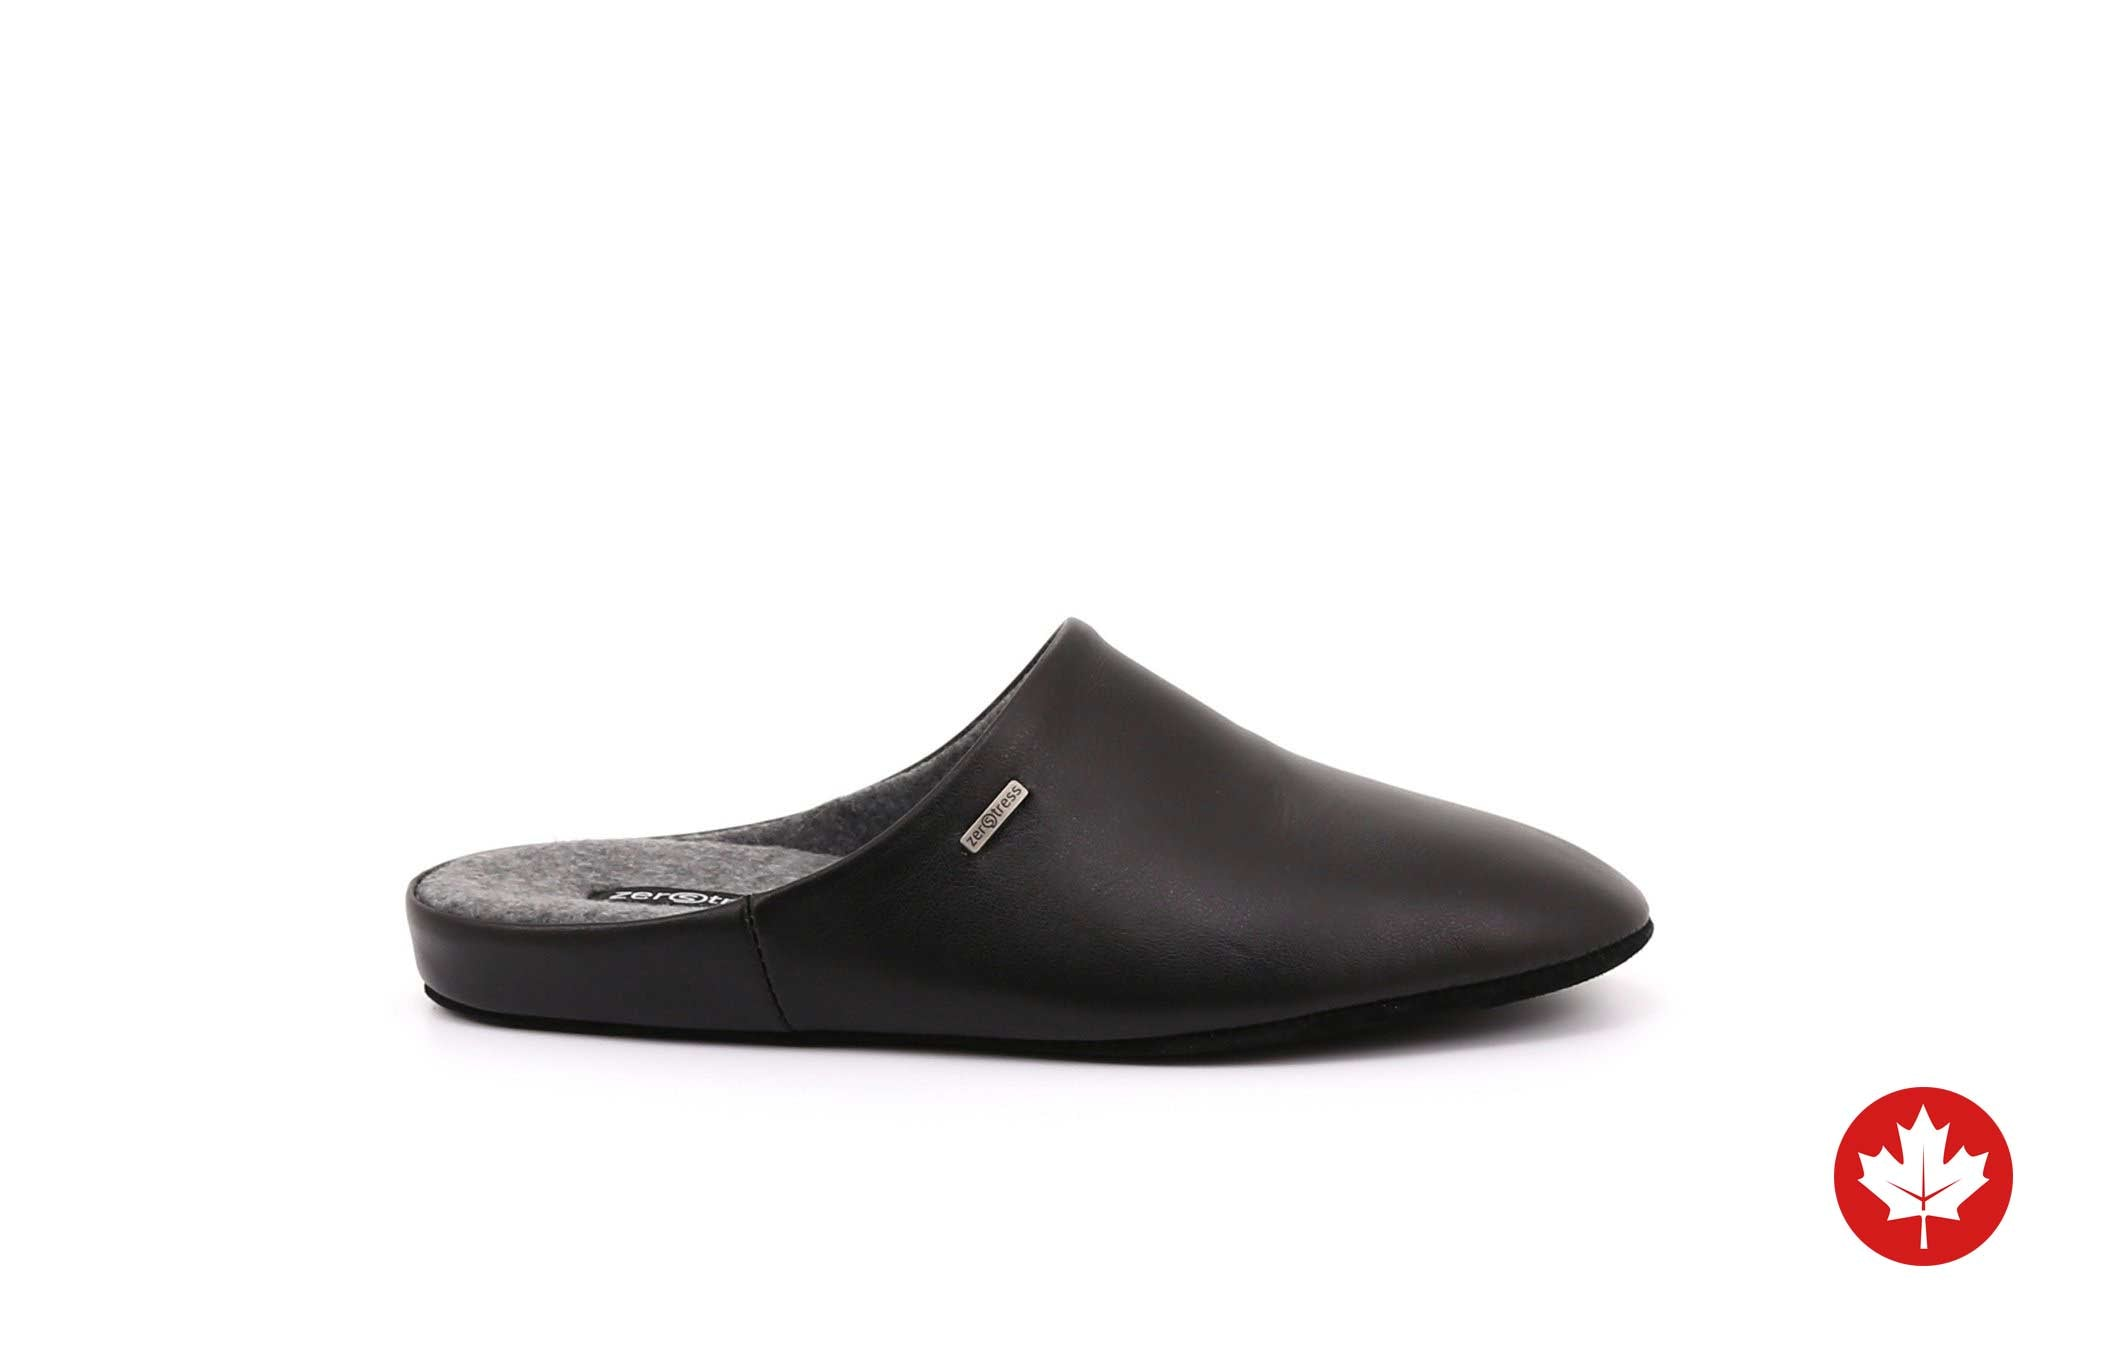 Jasper Men's Leather Slippers with Suede Sole